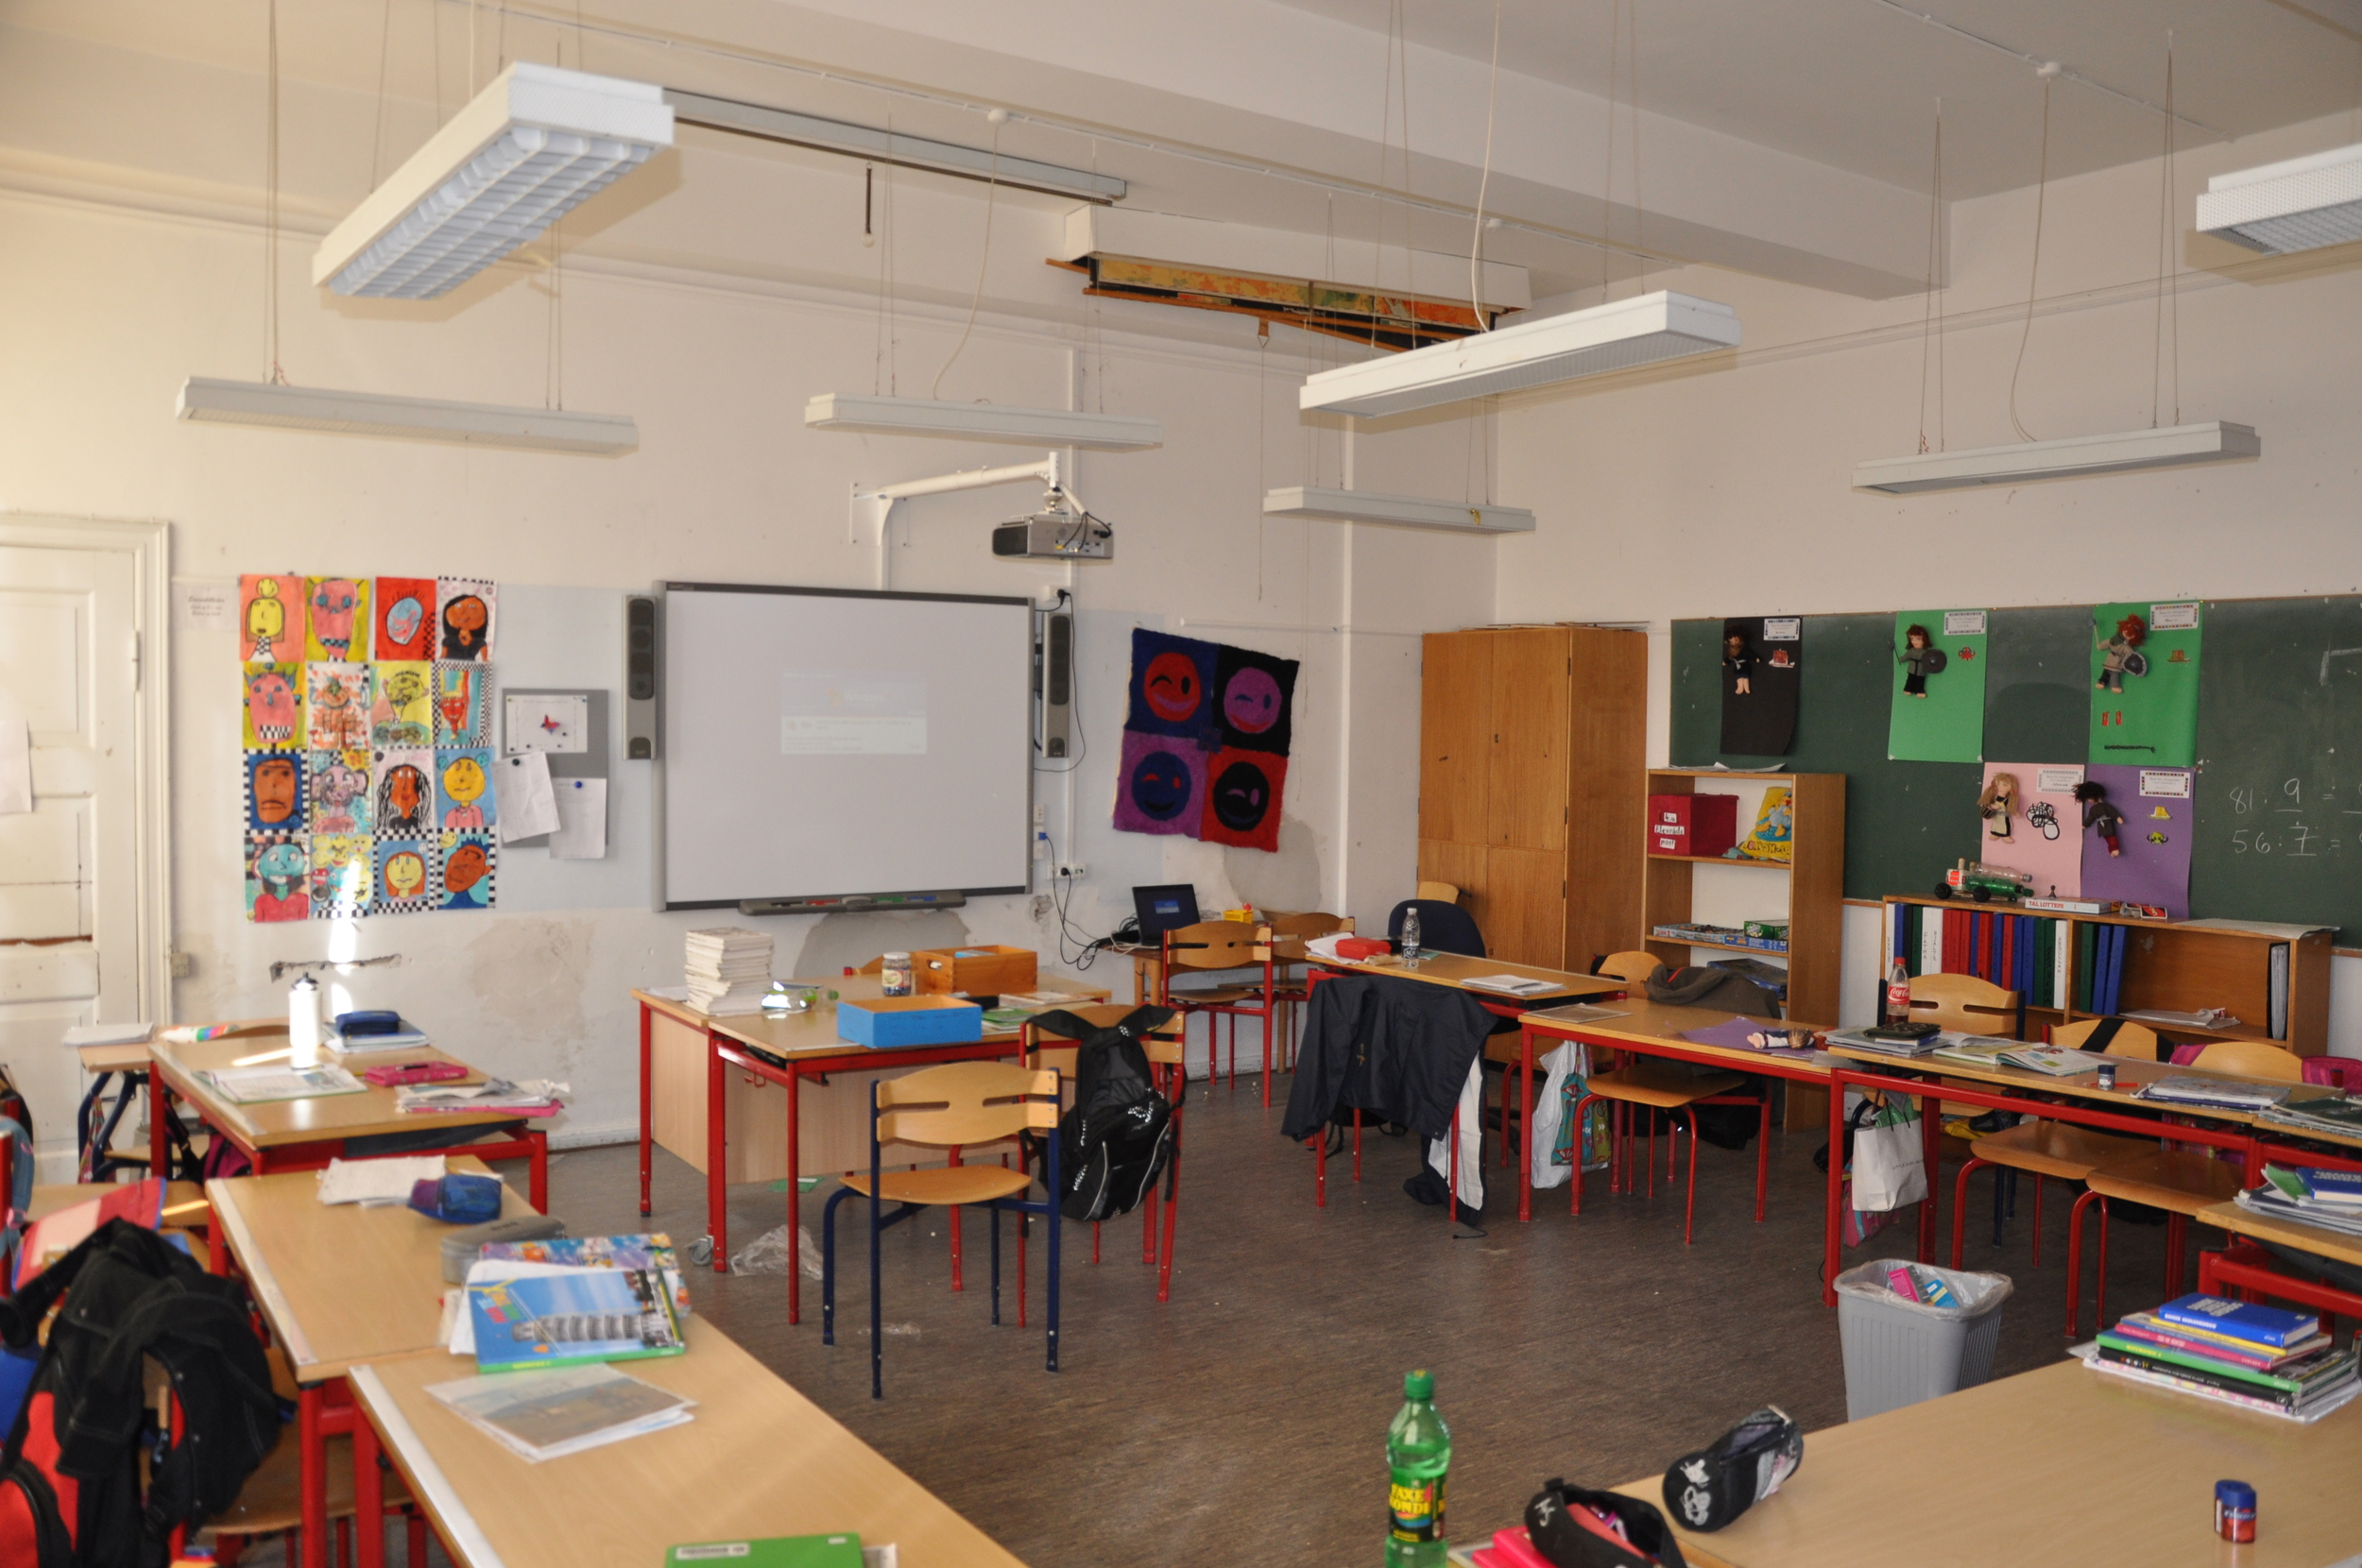 A picture of a danish classroom at grøndalsvænge school. Every classroom today regardless of condition will have an Interactive Smartboard installed. The smartboard i ON.